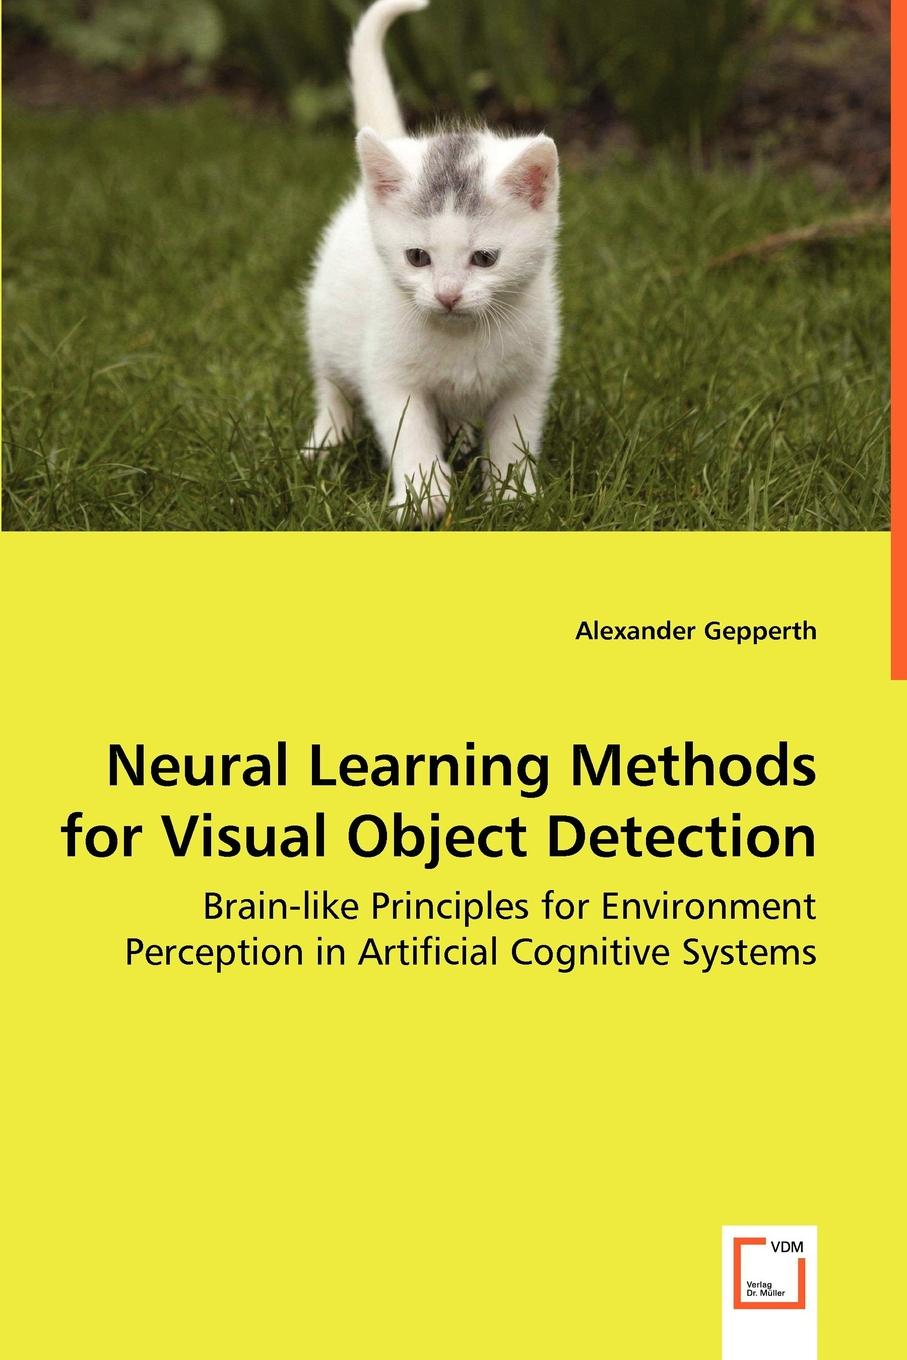 Alexander Gepperth Neural Learning Methods for Visual Object Detection - Brain-like Principles for Environment Perception in Artificial Cognitive Systems blackmore richard doddridge cradock nowell a tale of the new forest volume 2 of 3